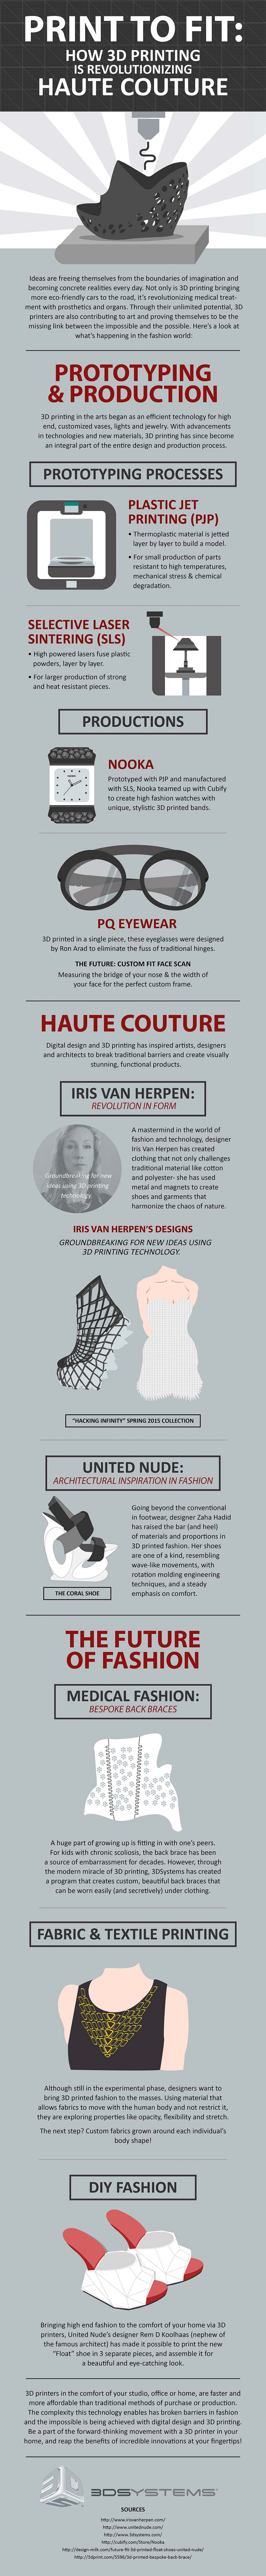 Print to Fit: How 3D Printing is Revolutionizing Haute Couture Infographic